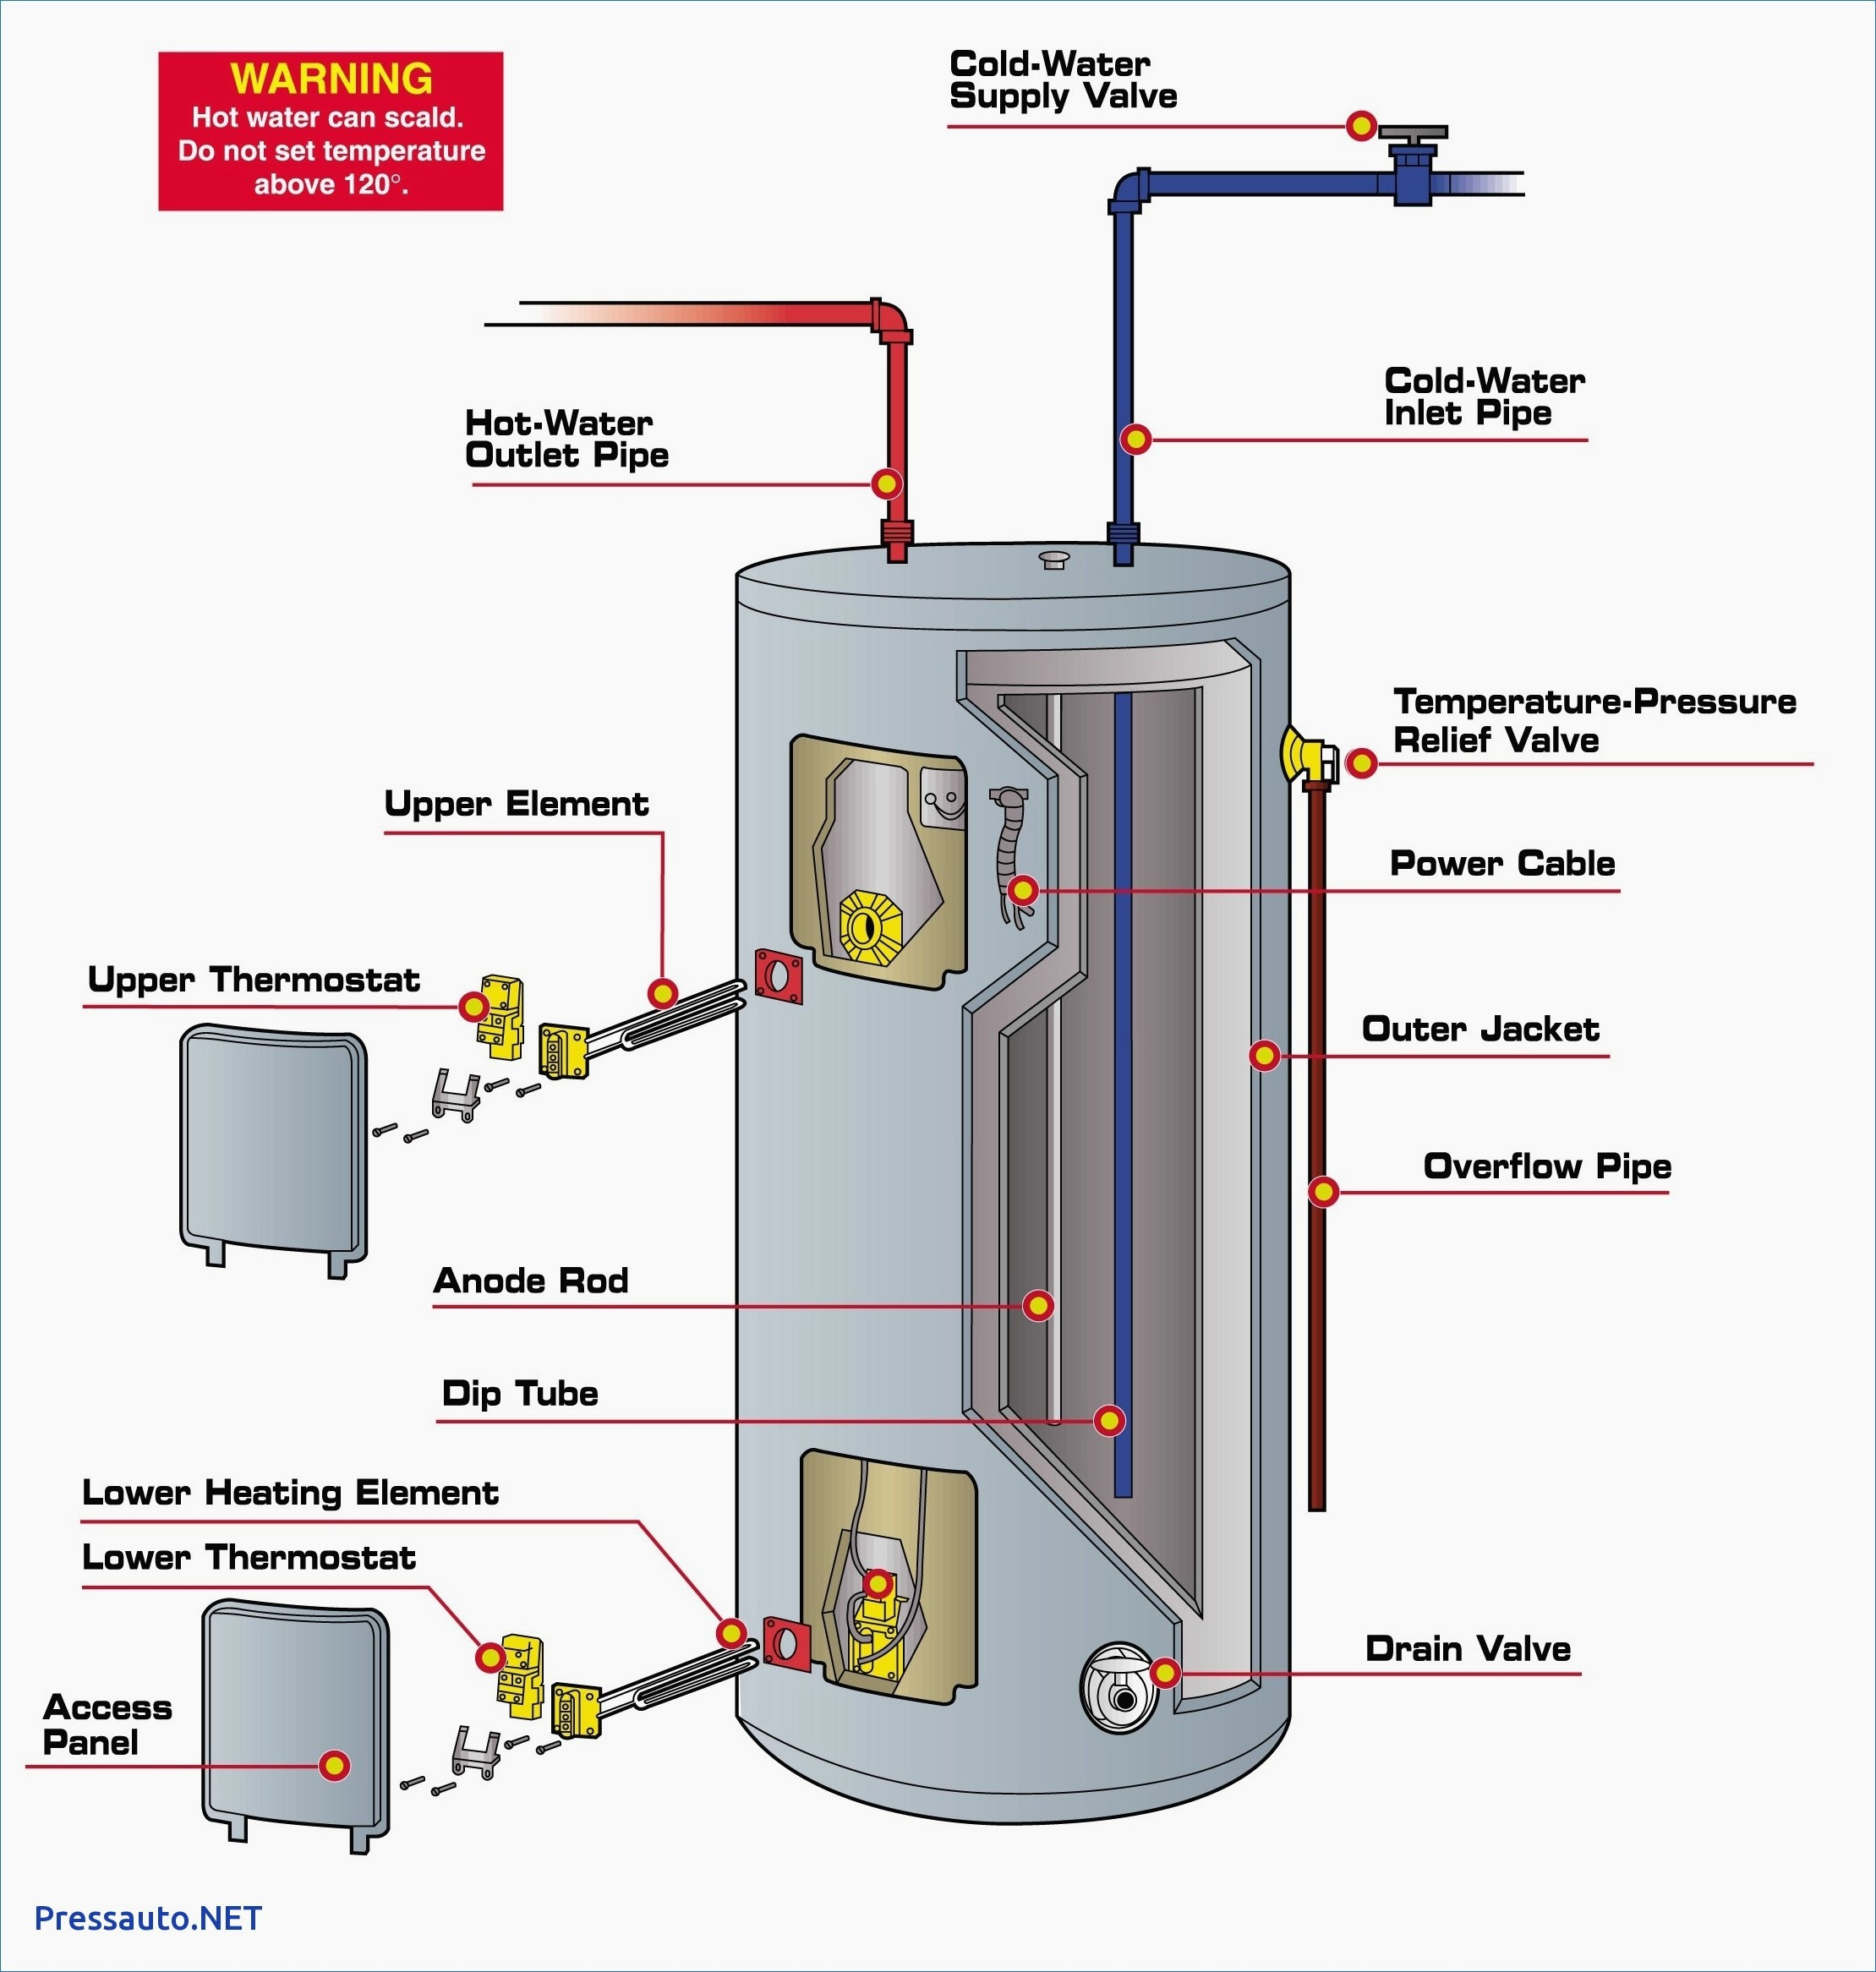 wiring diagram for hot water heater thermostat Download-Wiring Diagram Electric Water Heater Fresh New Hot Water Heater Wiring Diagram Diagram 6-g